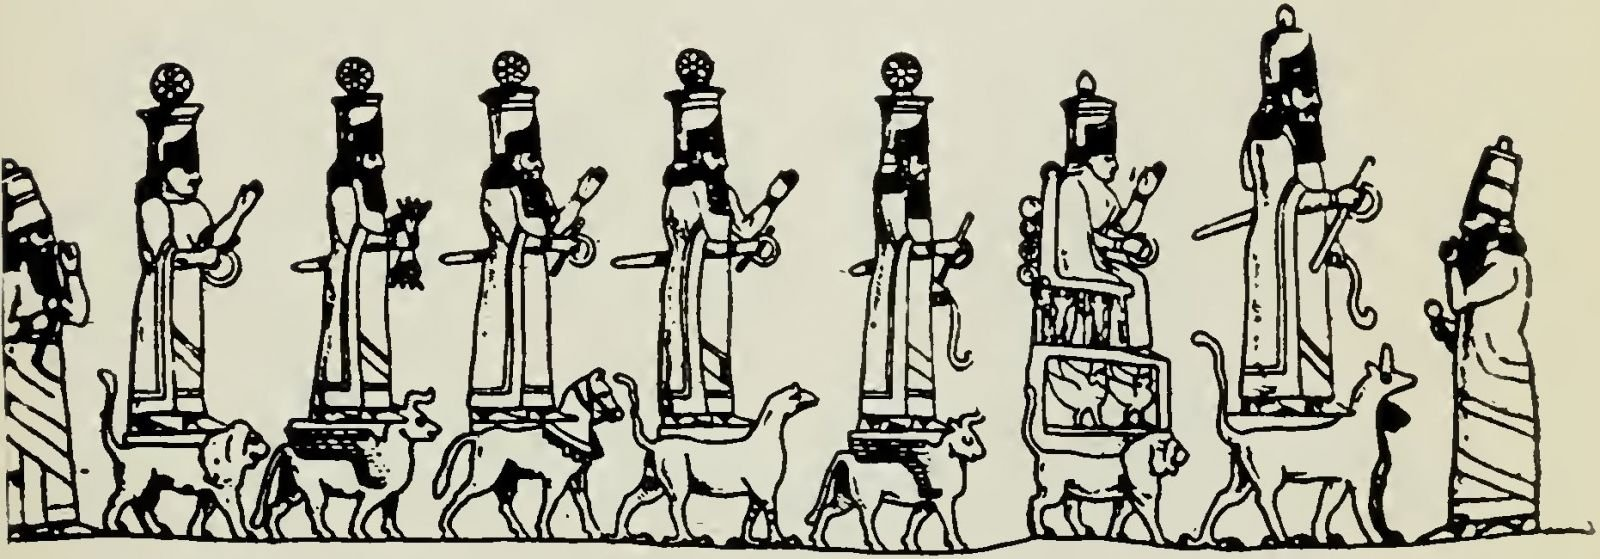 Fig. 3. Procession of Gods